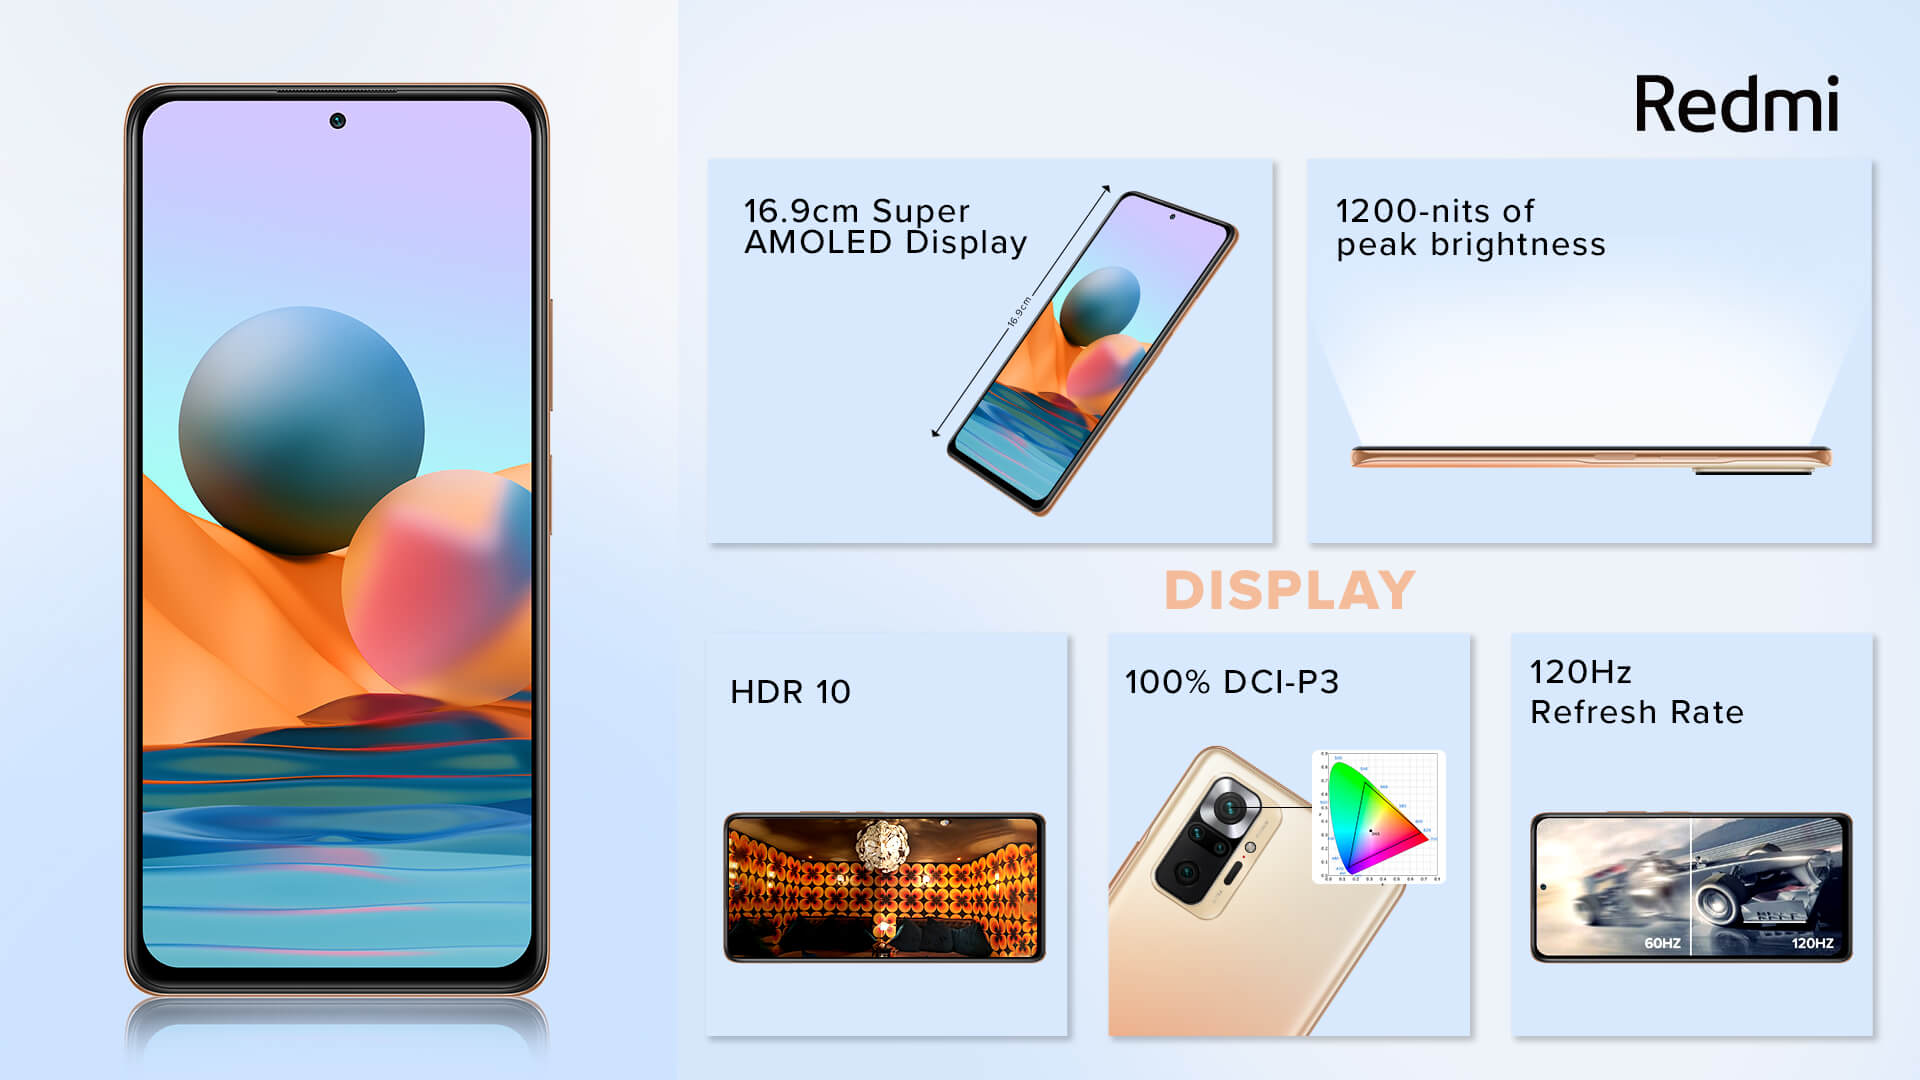 Redmi Note 10 Pro Max display specs